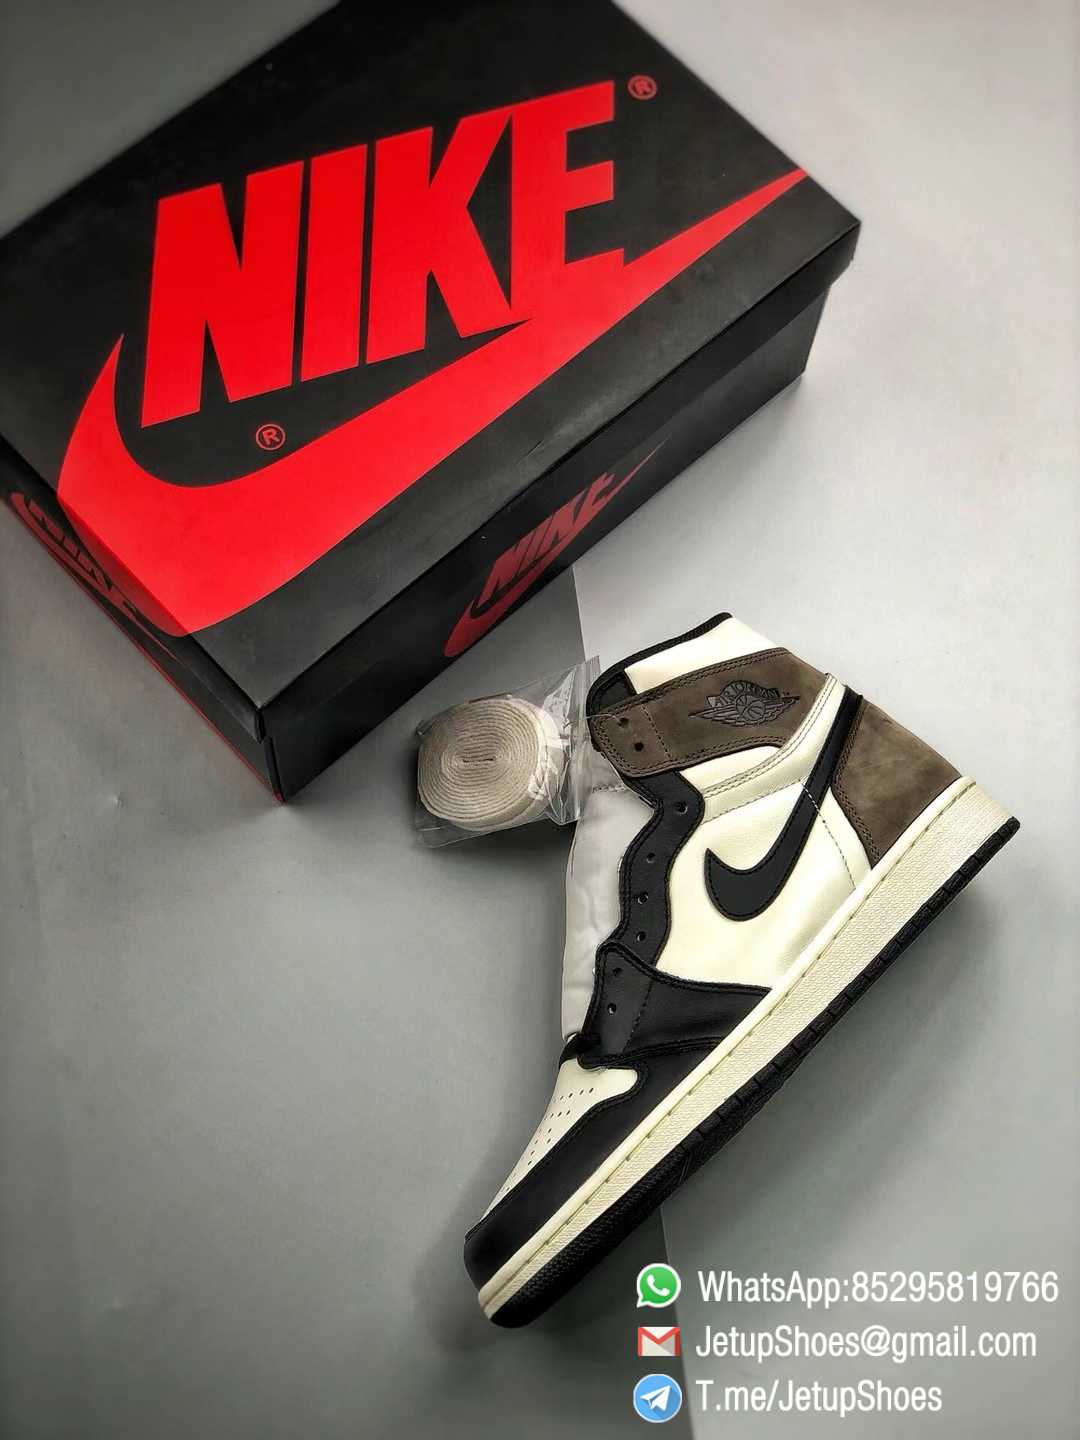 Best Replica Air Jordan 1 Retro High OG Dark Mocha Off white Leather Base and Black Overylays Top Quality Sneakers 012